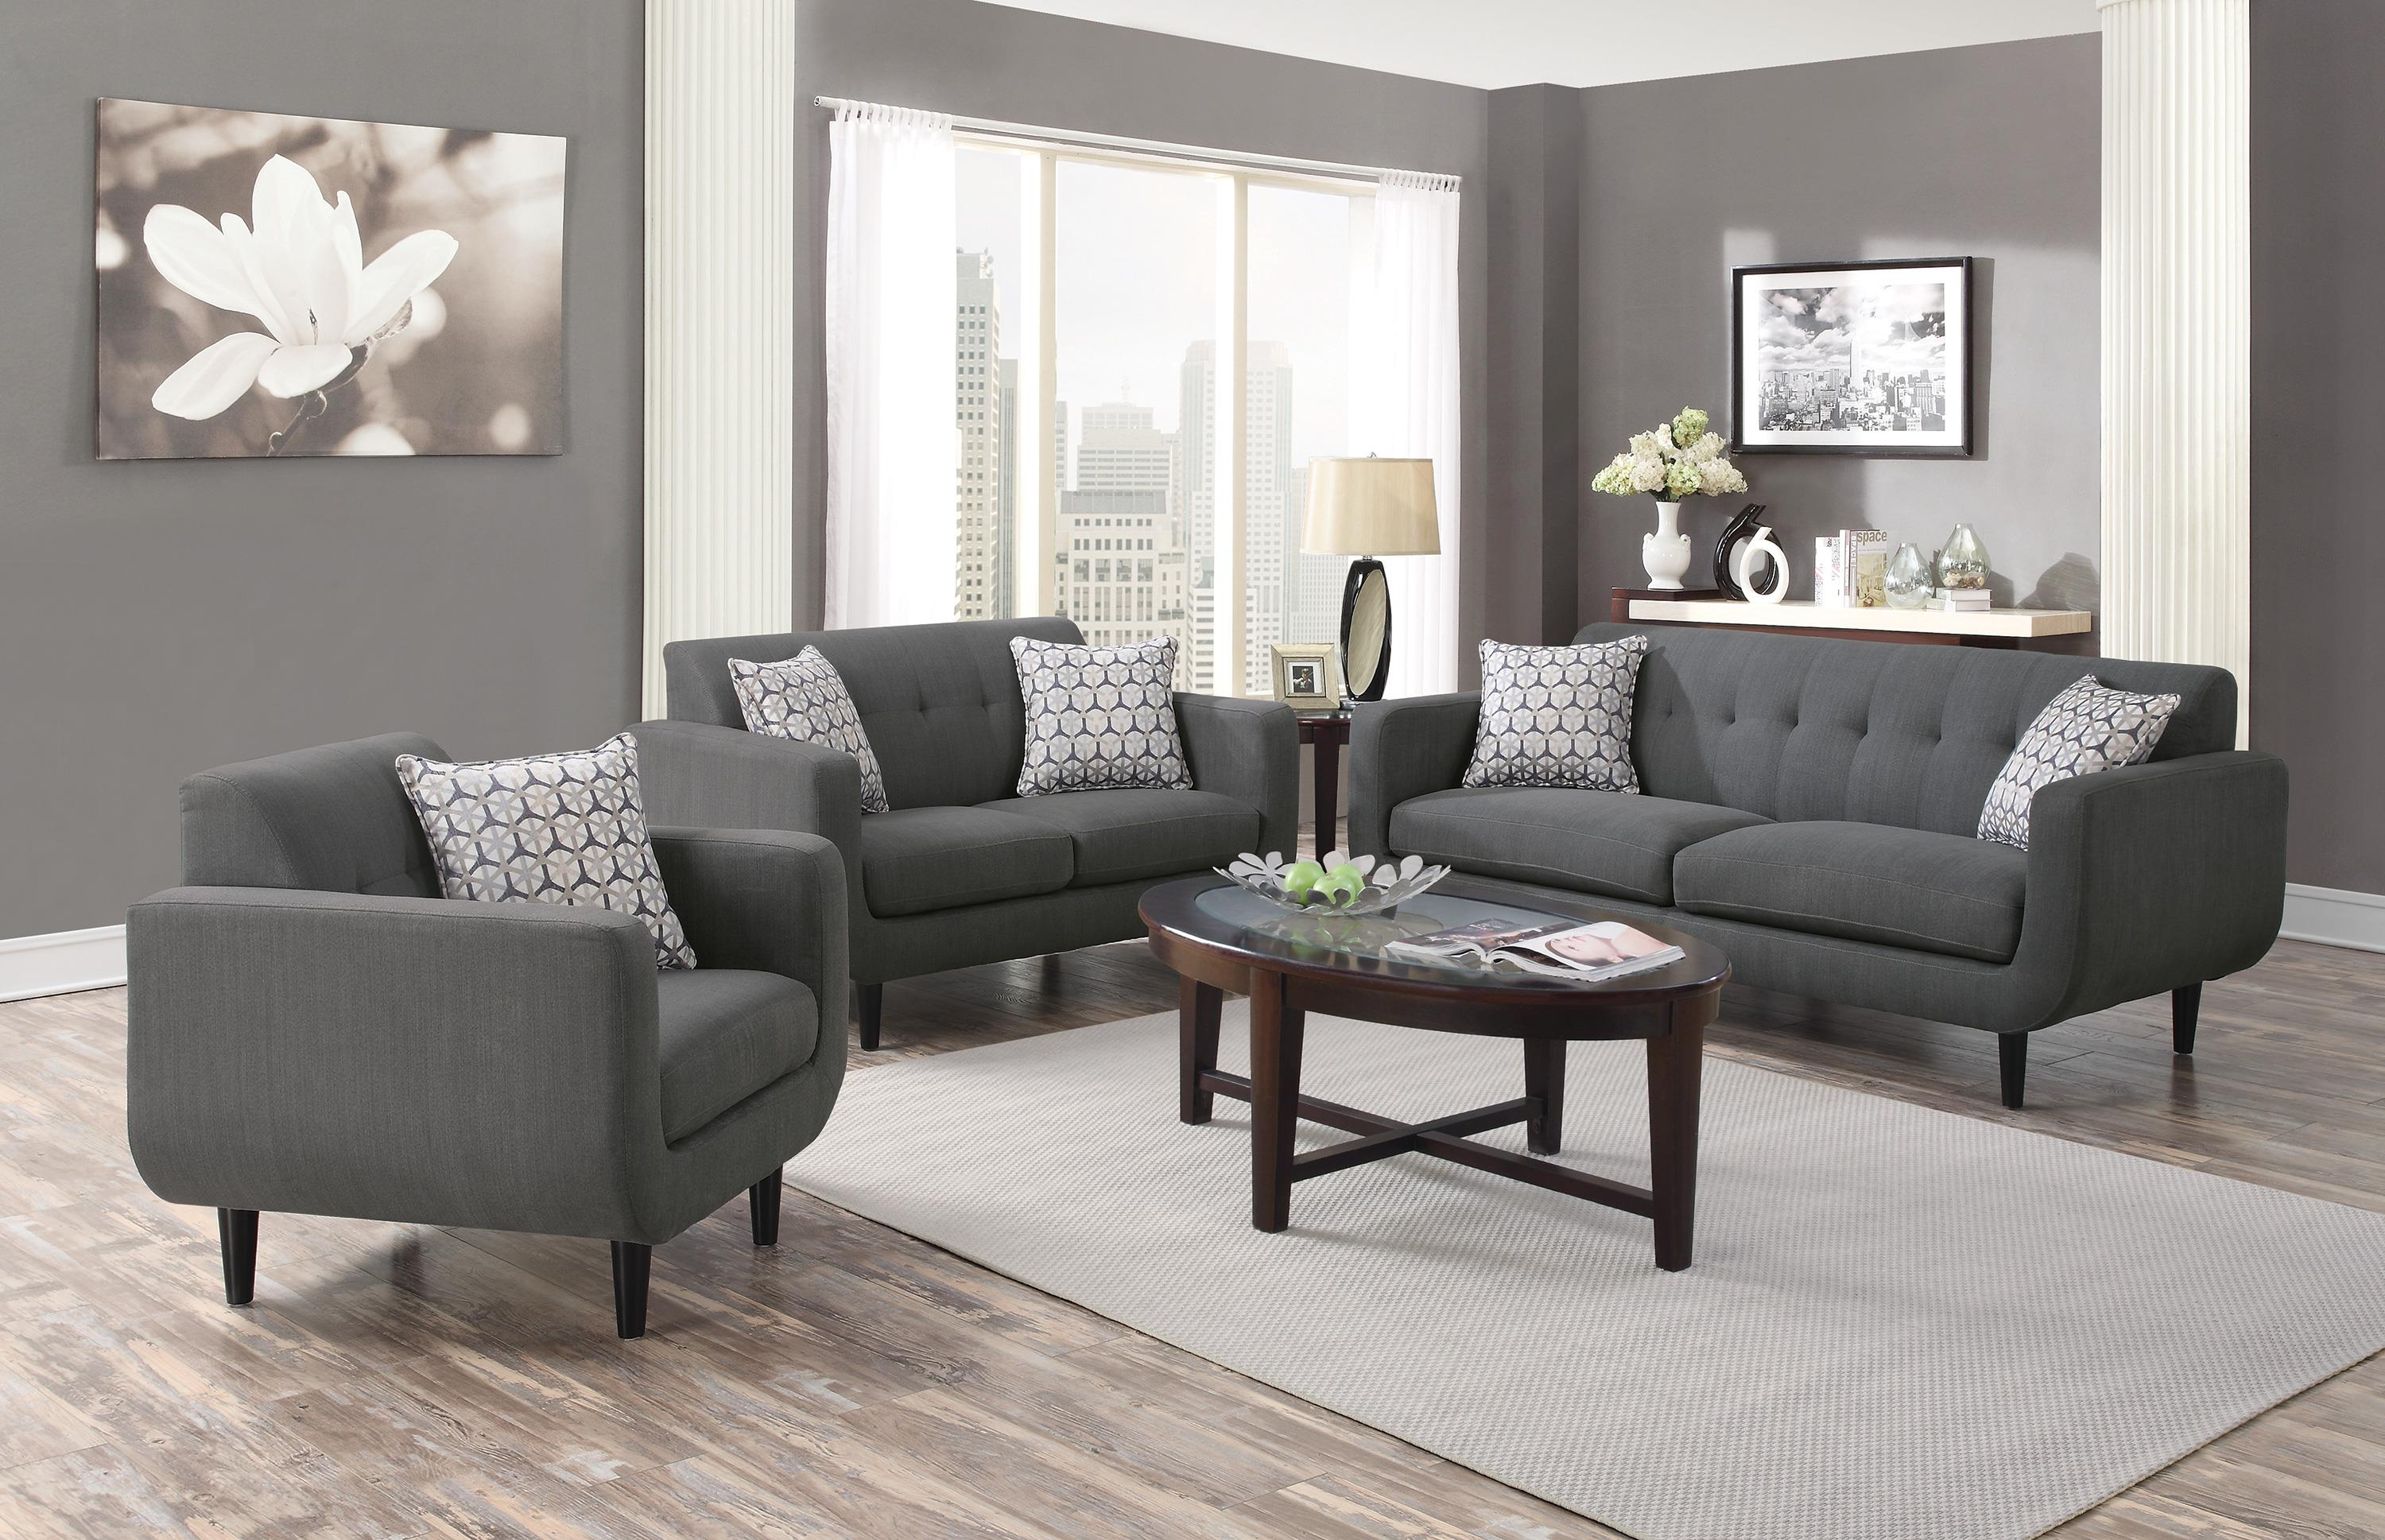 Stansall Mid Century Modern Loveseat Quality Furniture At Affordable Prices In Philadelphia Main Line Pa